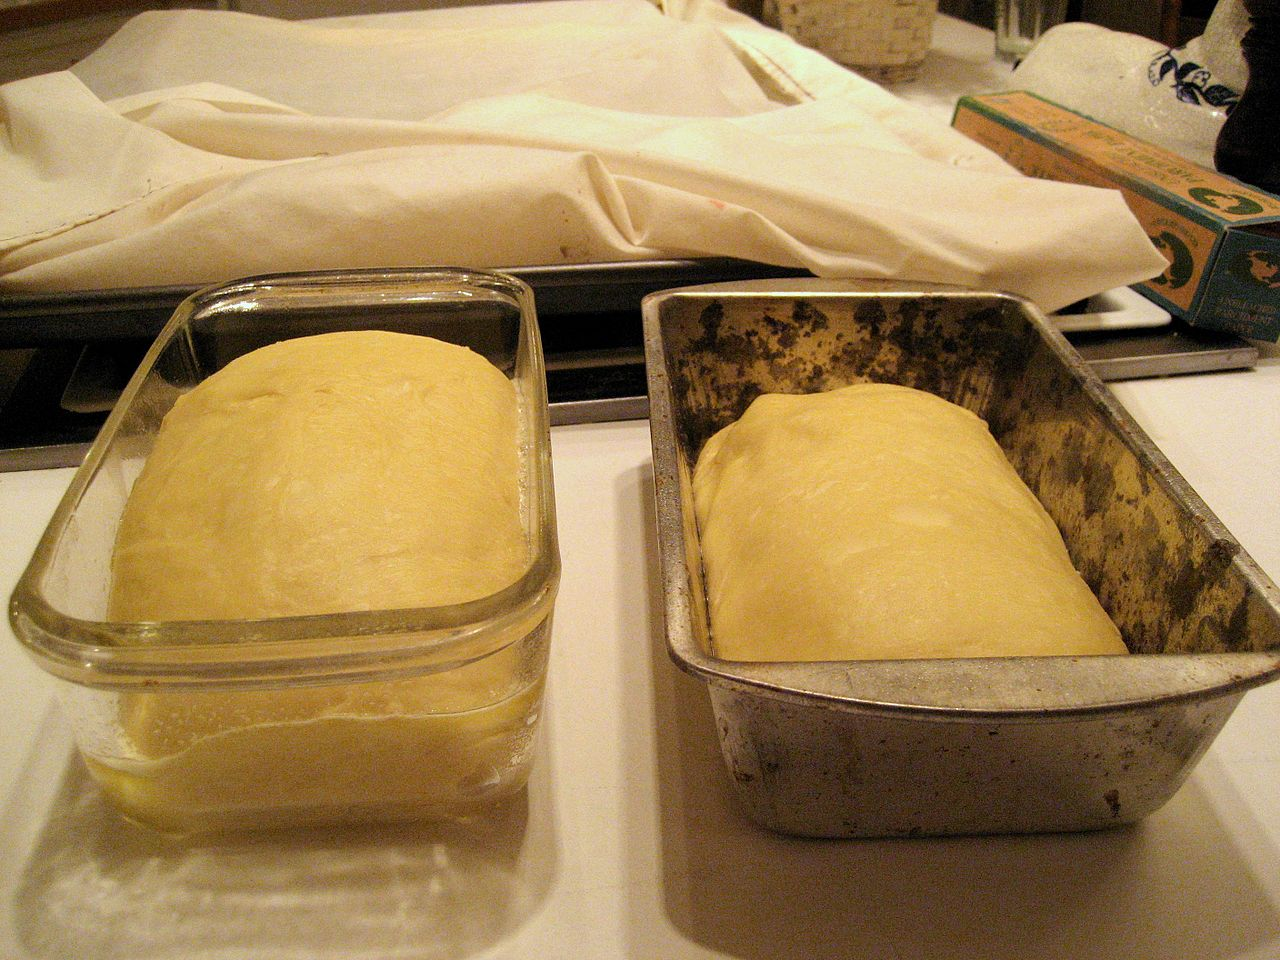 File Loaf Pans Jpg Wikimedia Commons